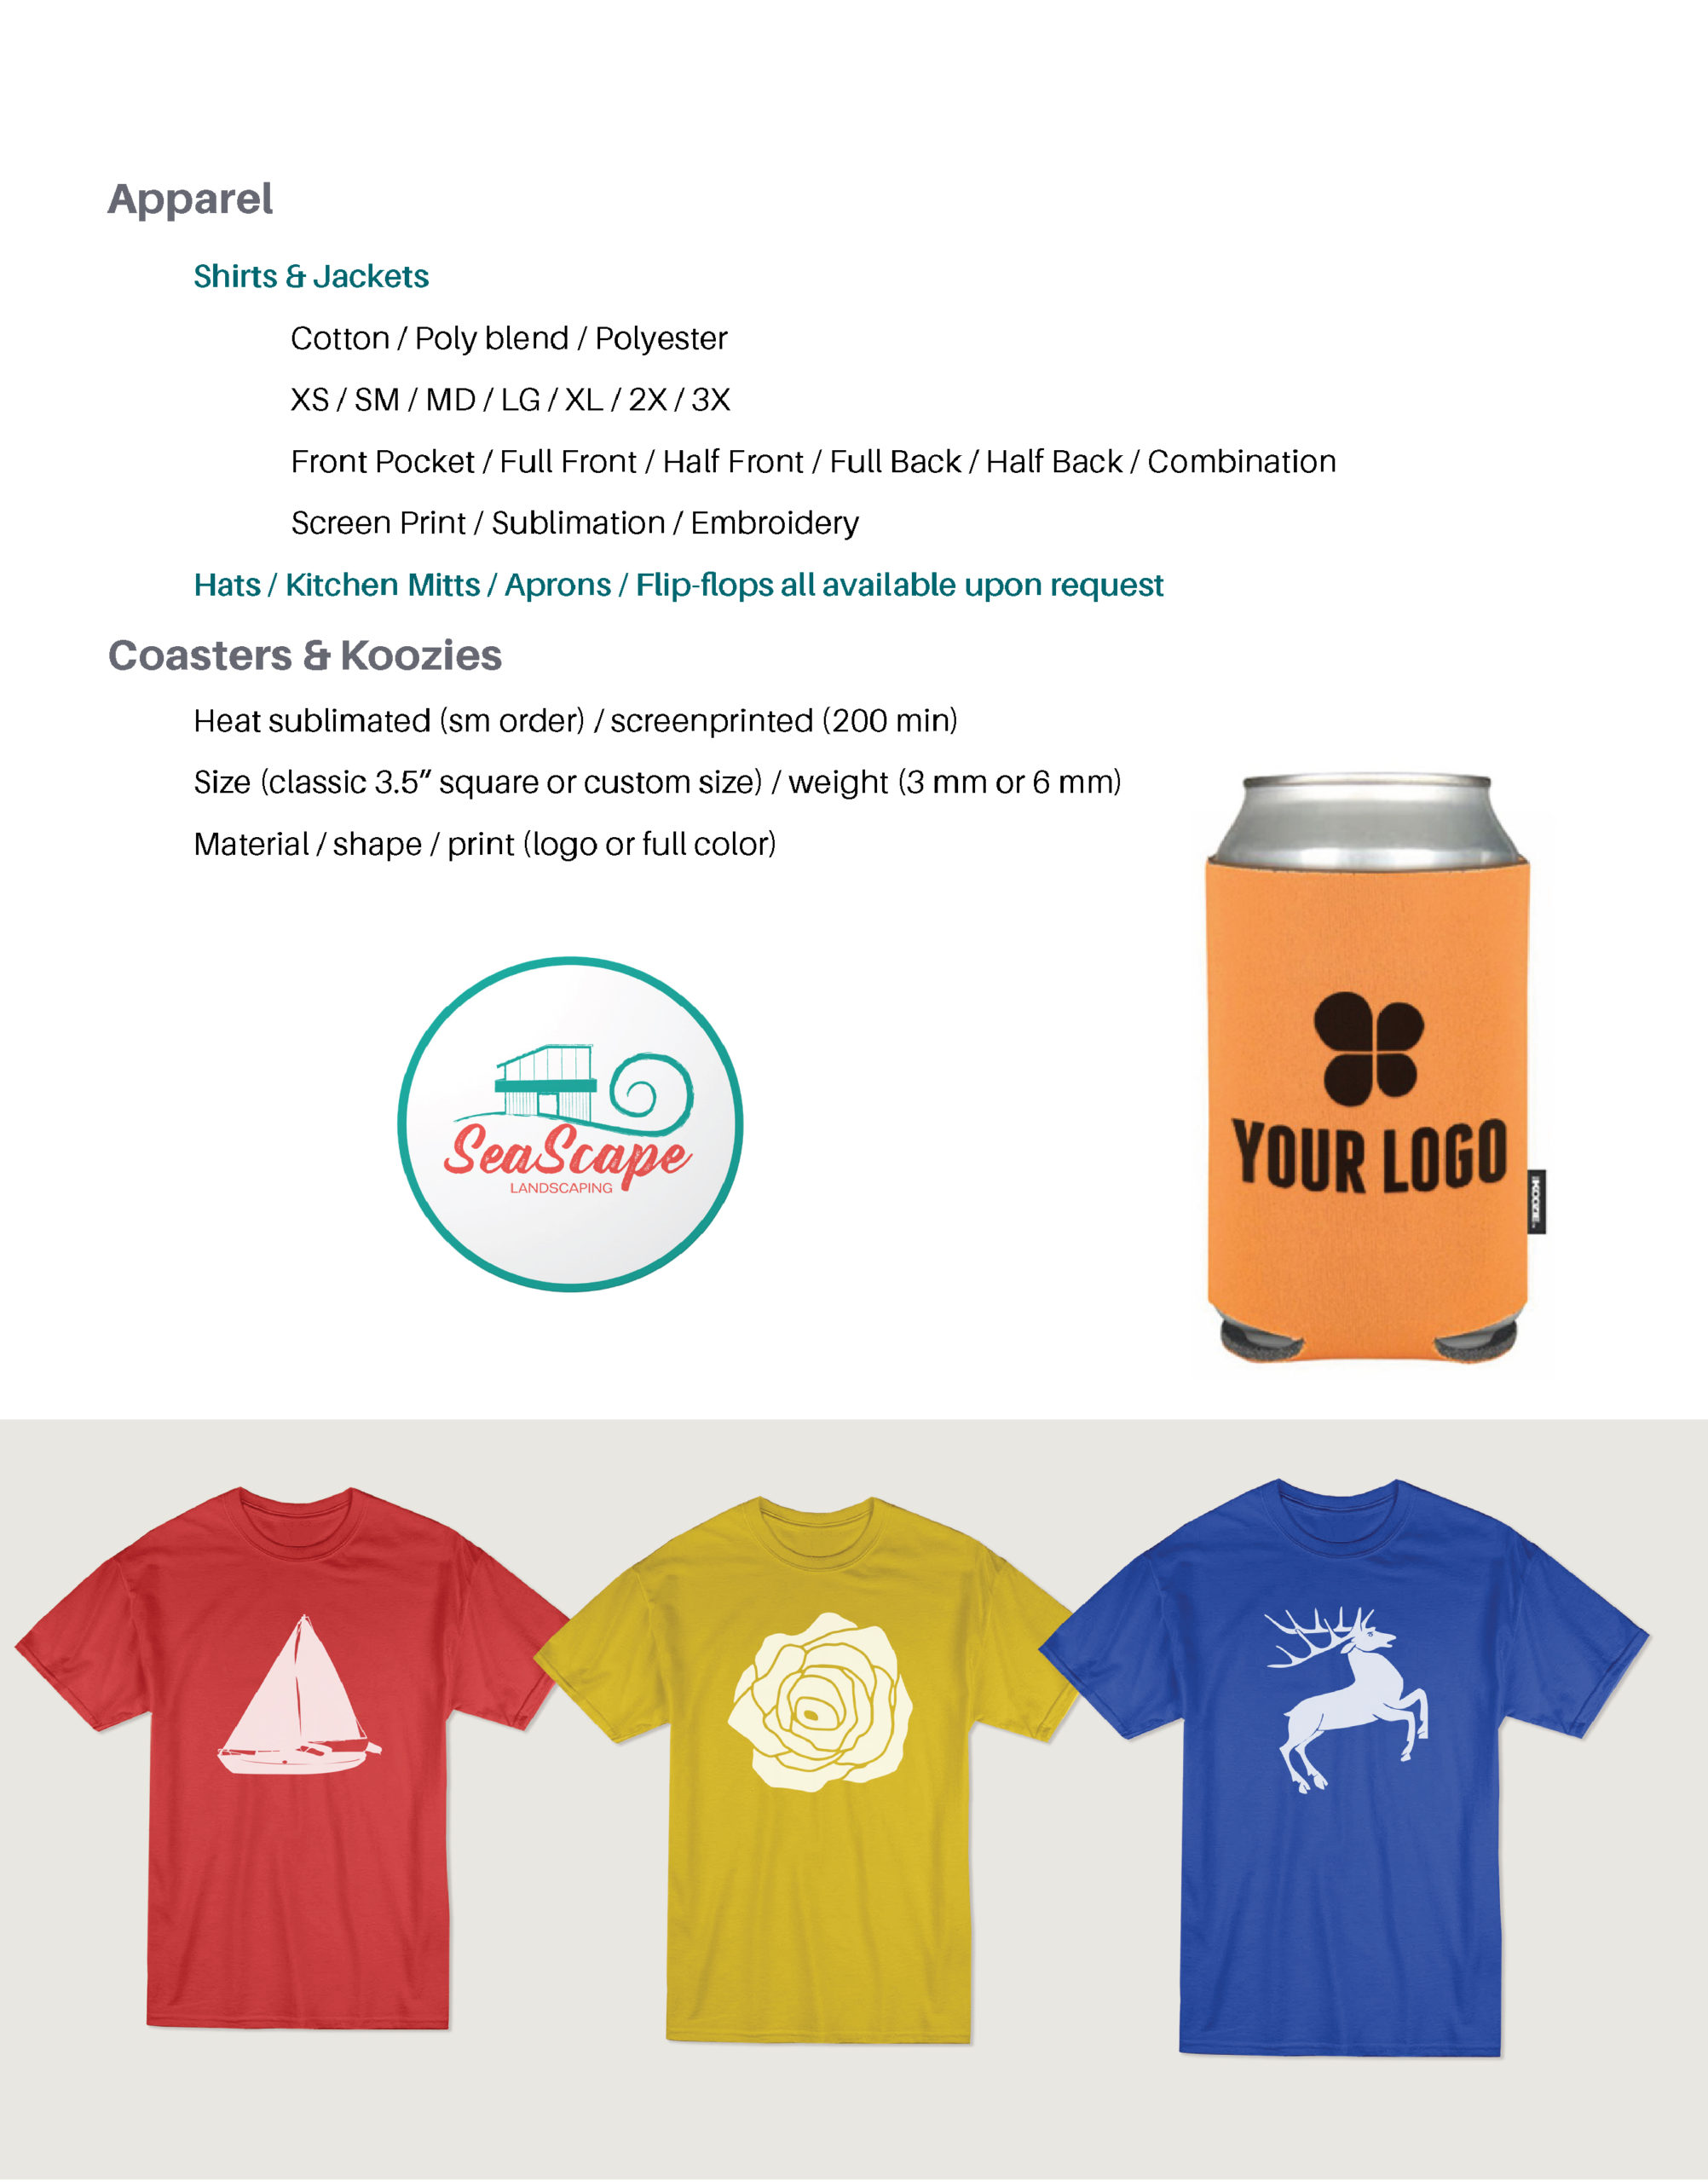 Page featuring product details on: shirts and jackets, coasters and koozies